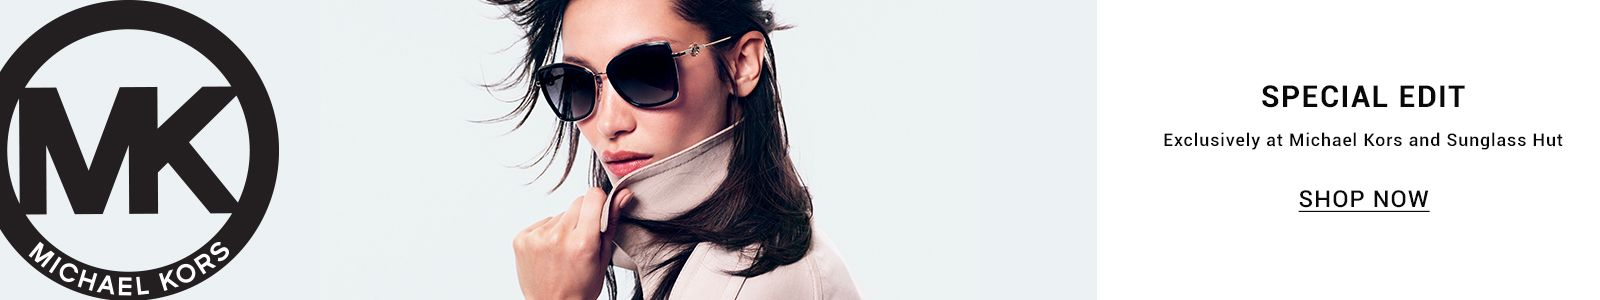 Michael Kors, Special Edit, Exclusively at Michael Kors and Sunglass Hut, Shop Now